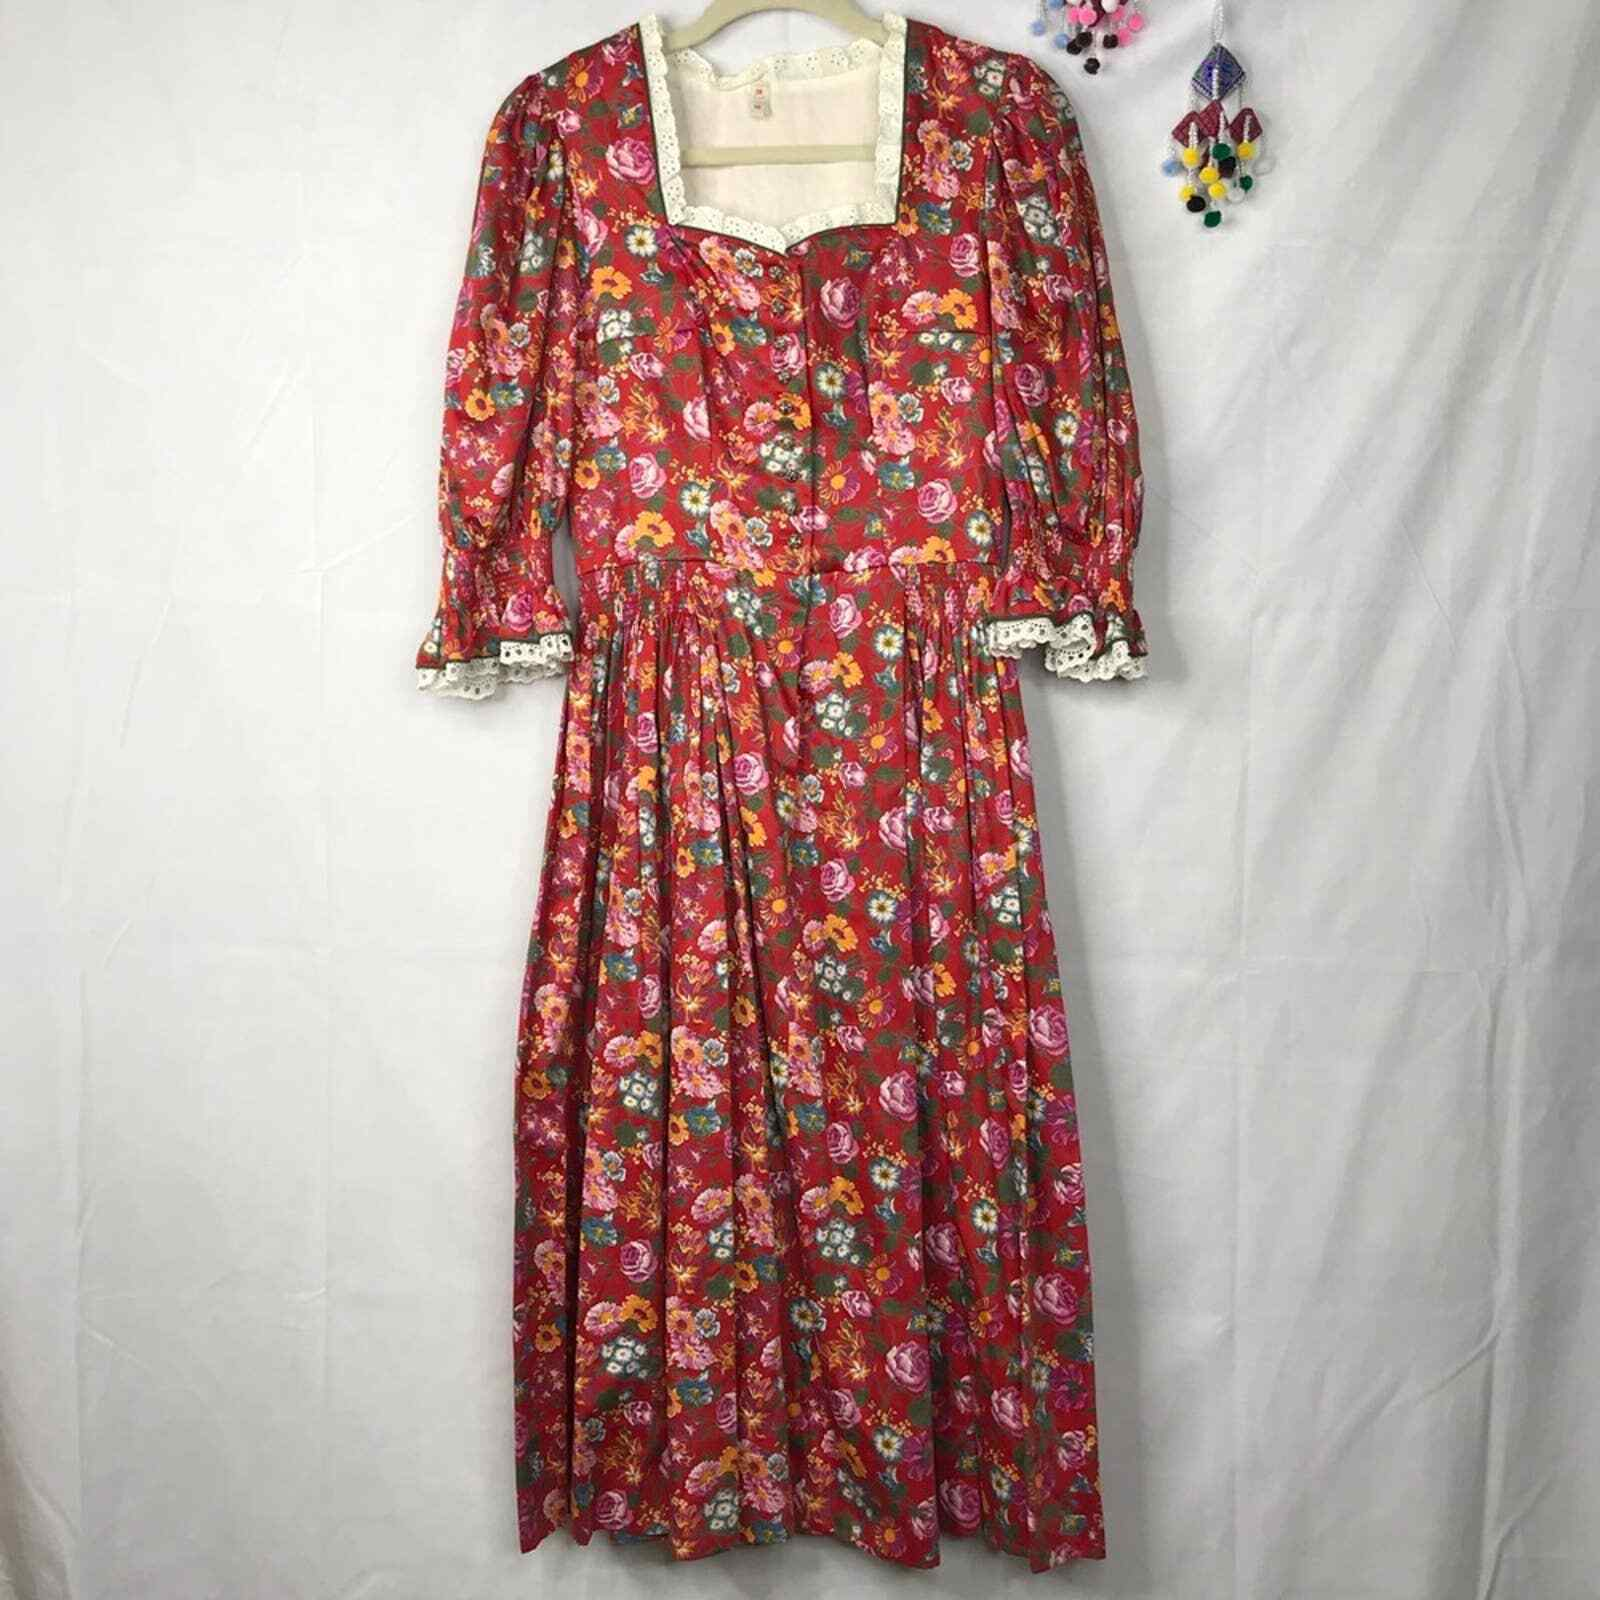 60s Style cottagecore floral prairie pleated dress - image 1